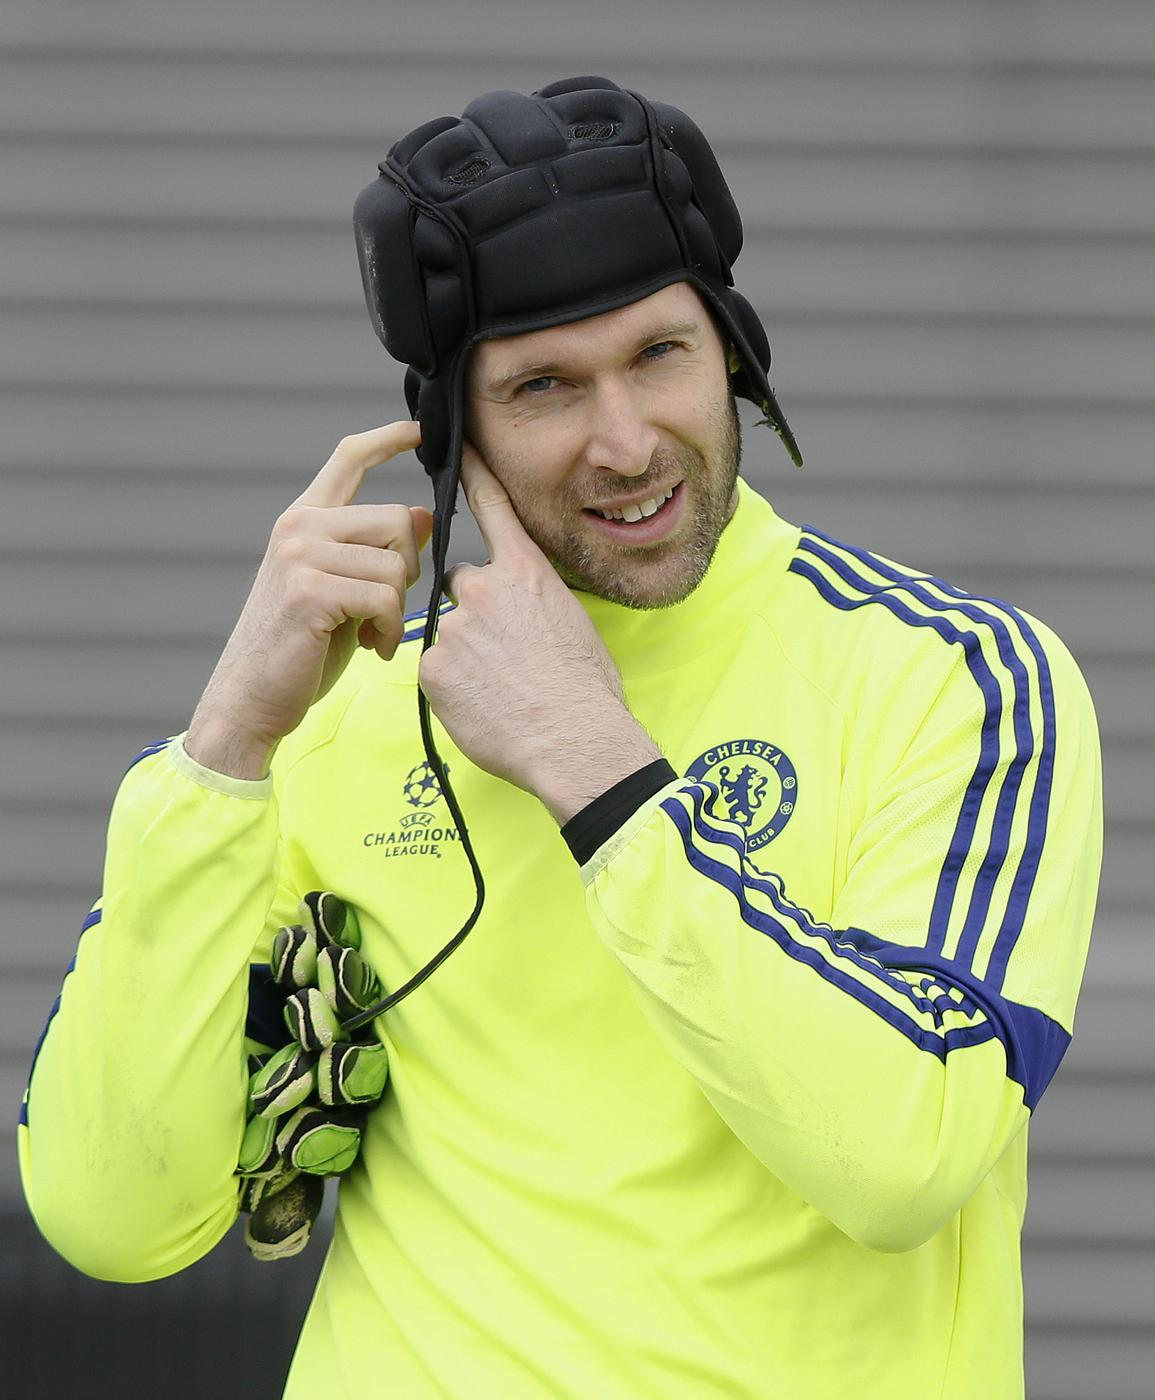 Petr Cech's agent CONFIRMS Chelsea goalkeeper has opened transfer talks with Besiktas